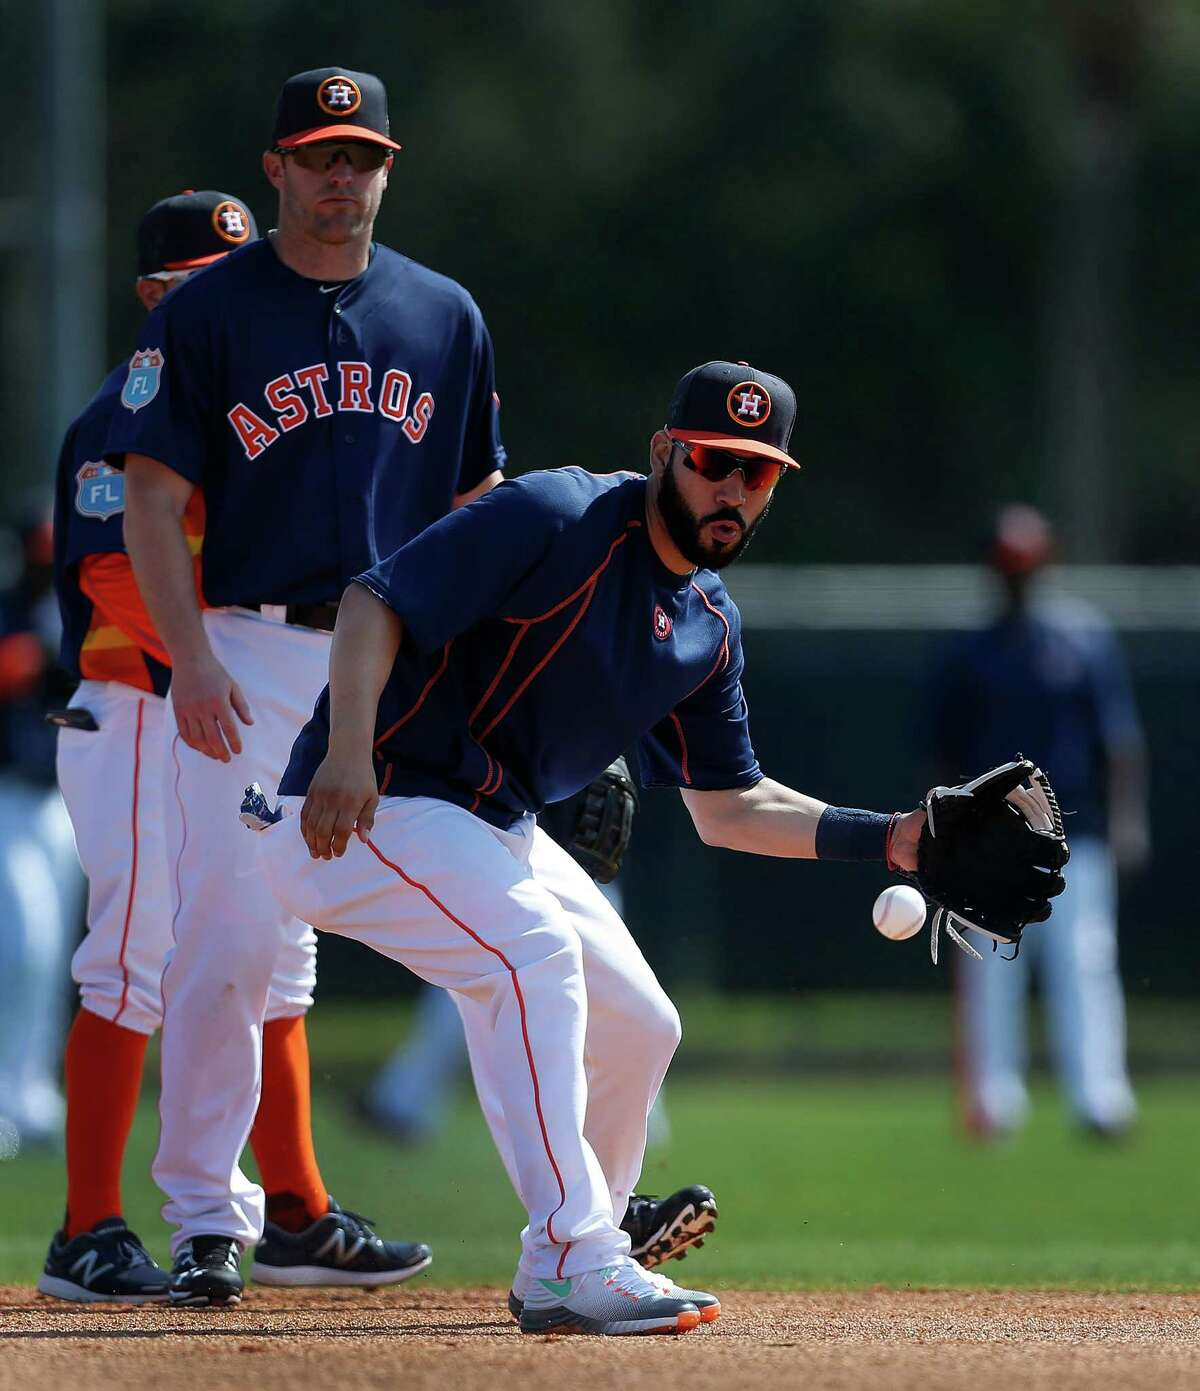 Marwin Gonzalez will get the start at first base Tuesday when the Astros open the season against the Yankees in New York.